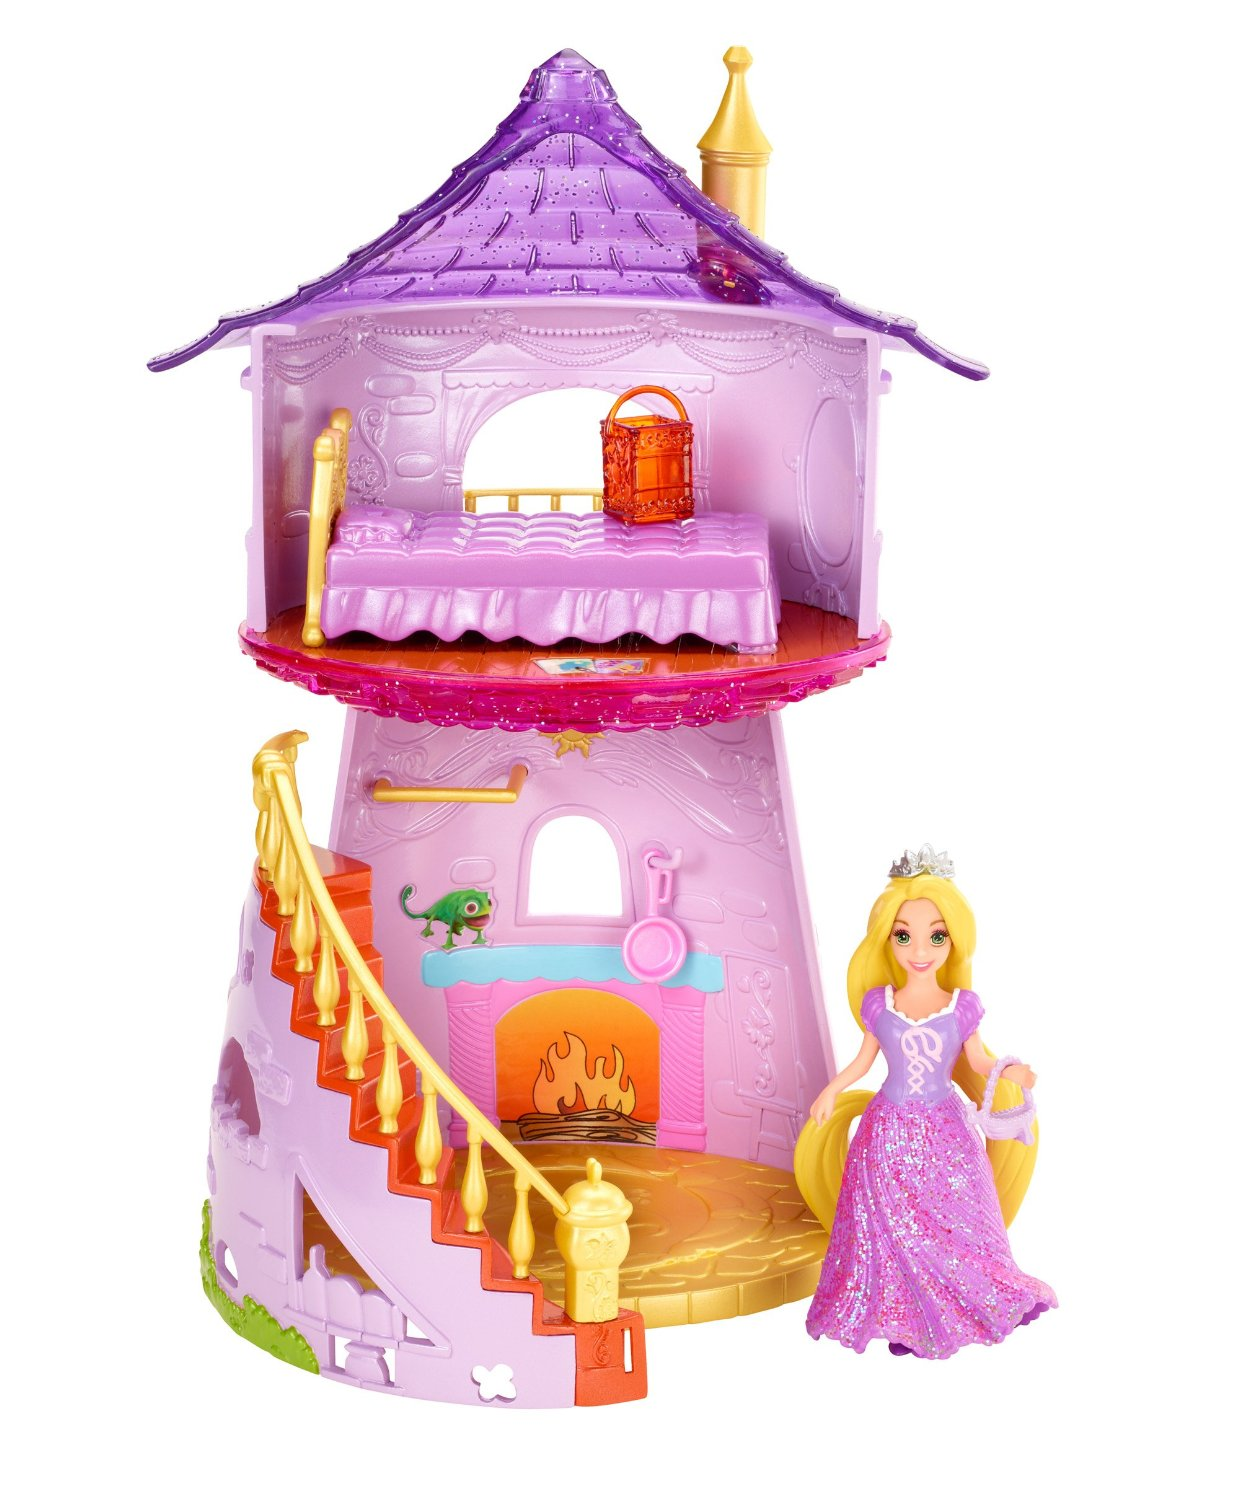 Disney Princess Little Kingdom MagiClip Rapunzel Playset Only 1698 Sisters Shopping Farm And